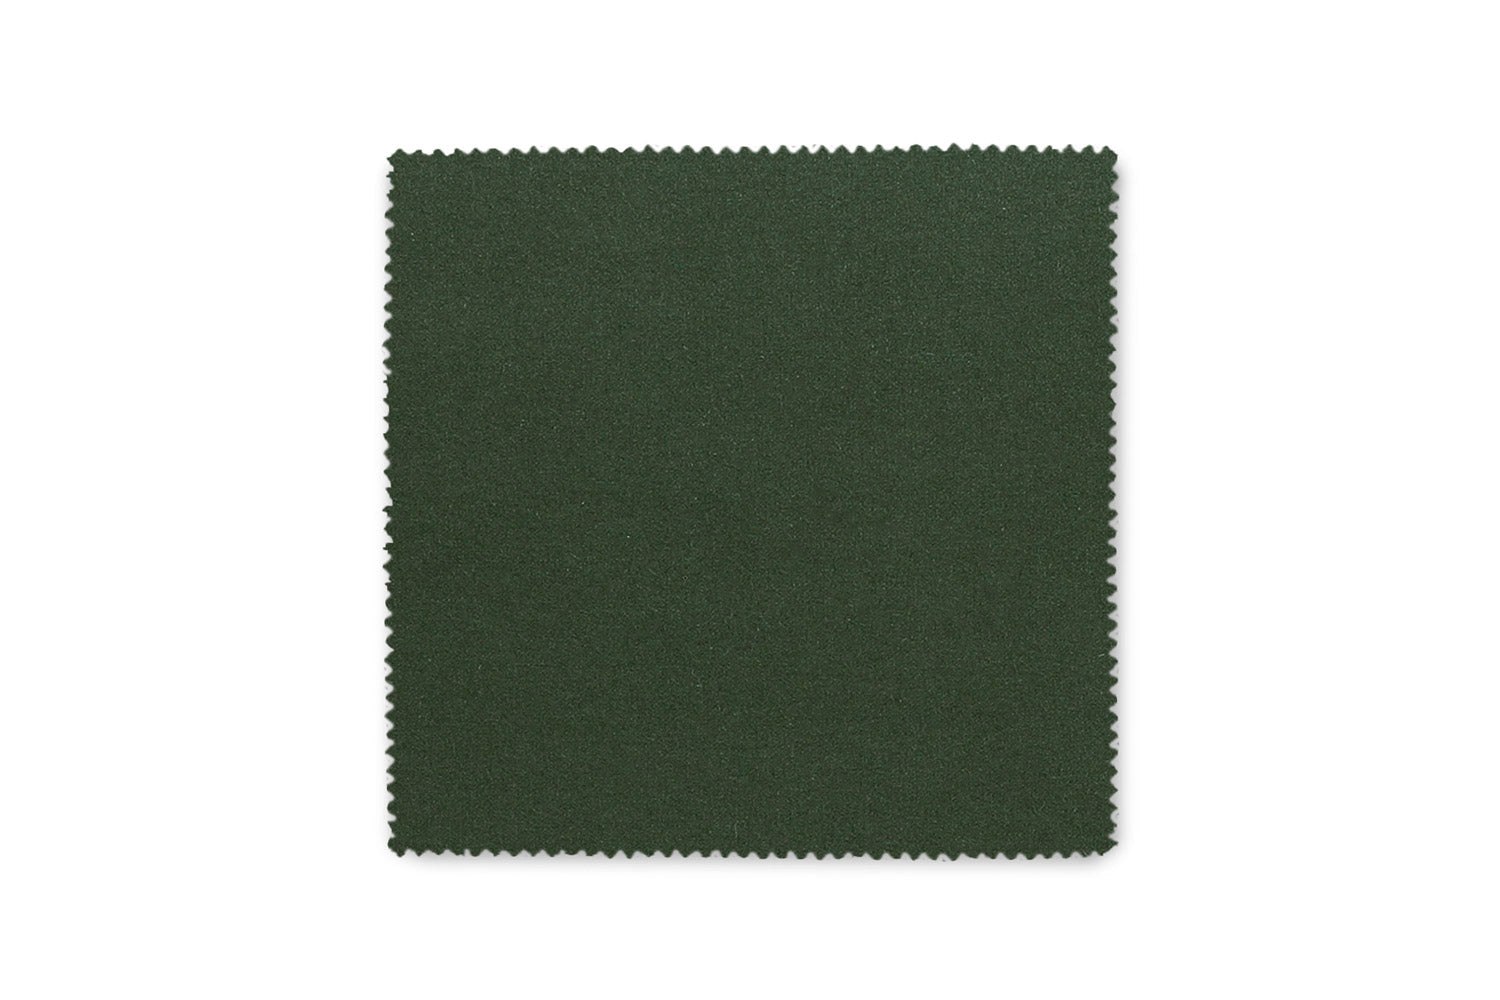 VOLOFABRIC015,forest green felt